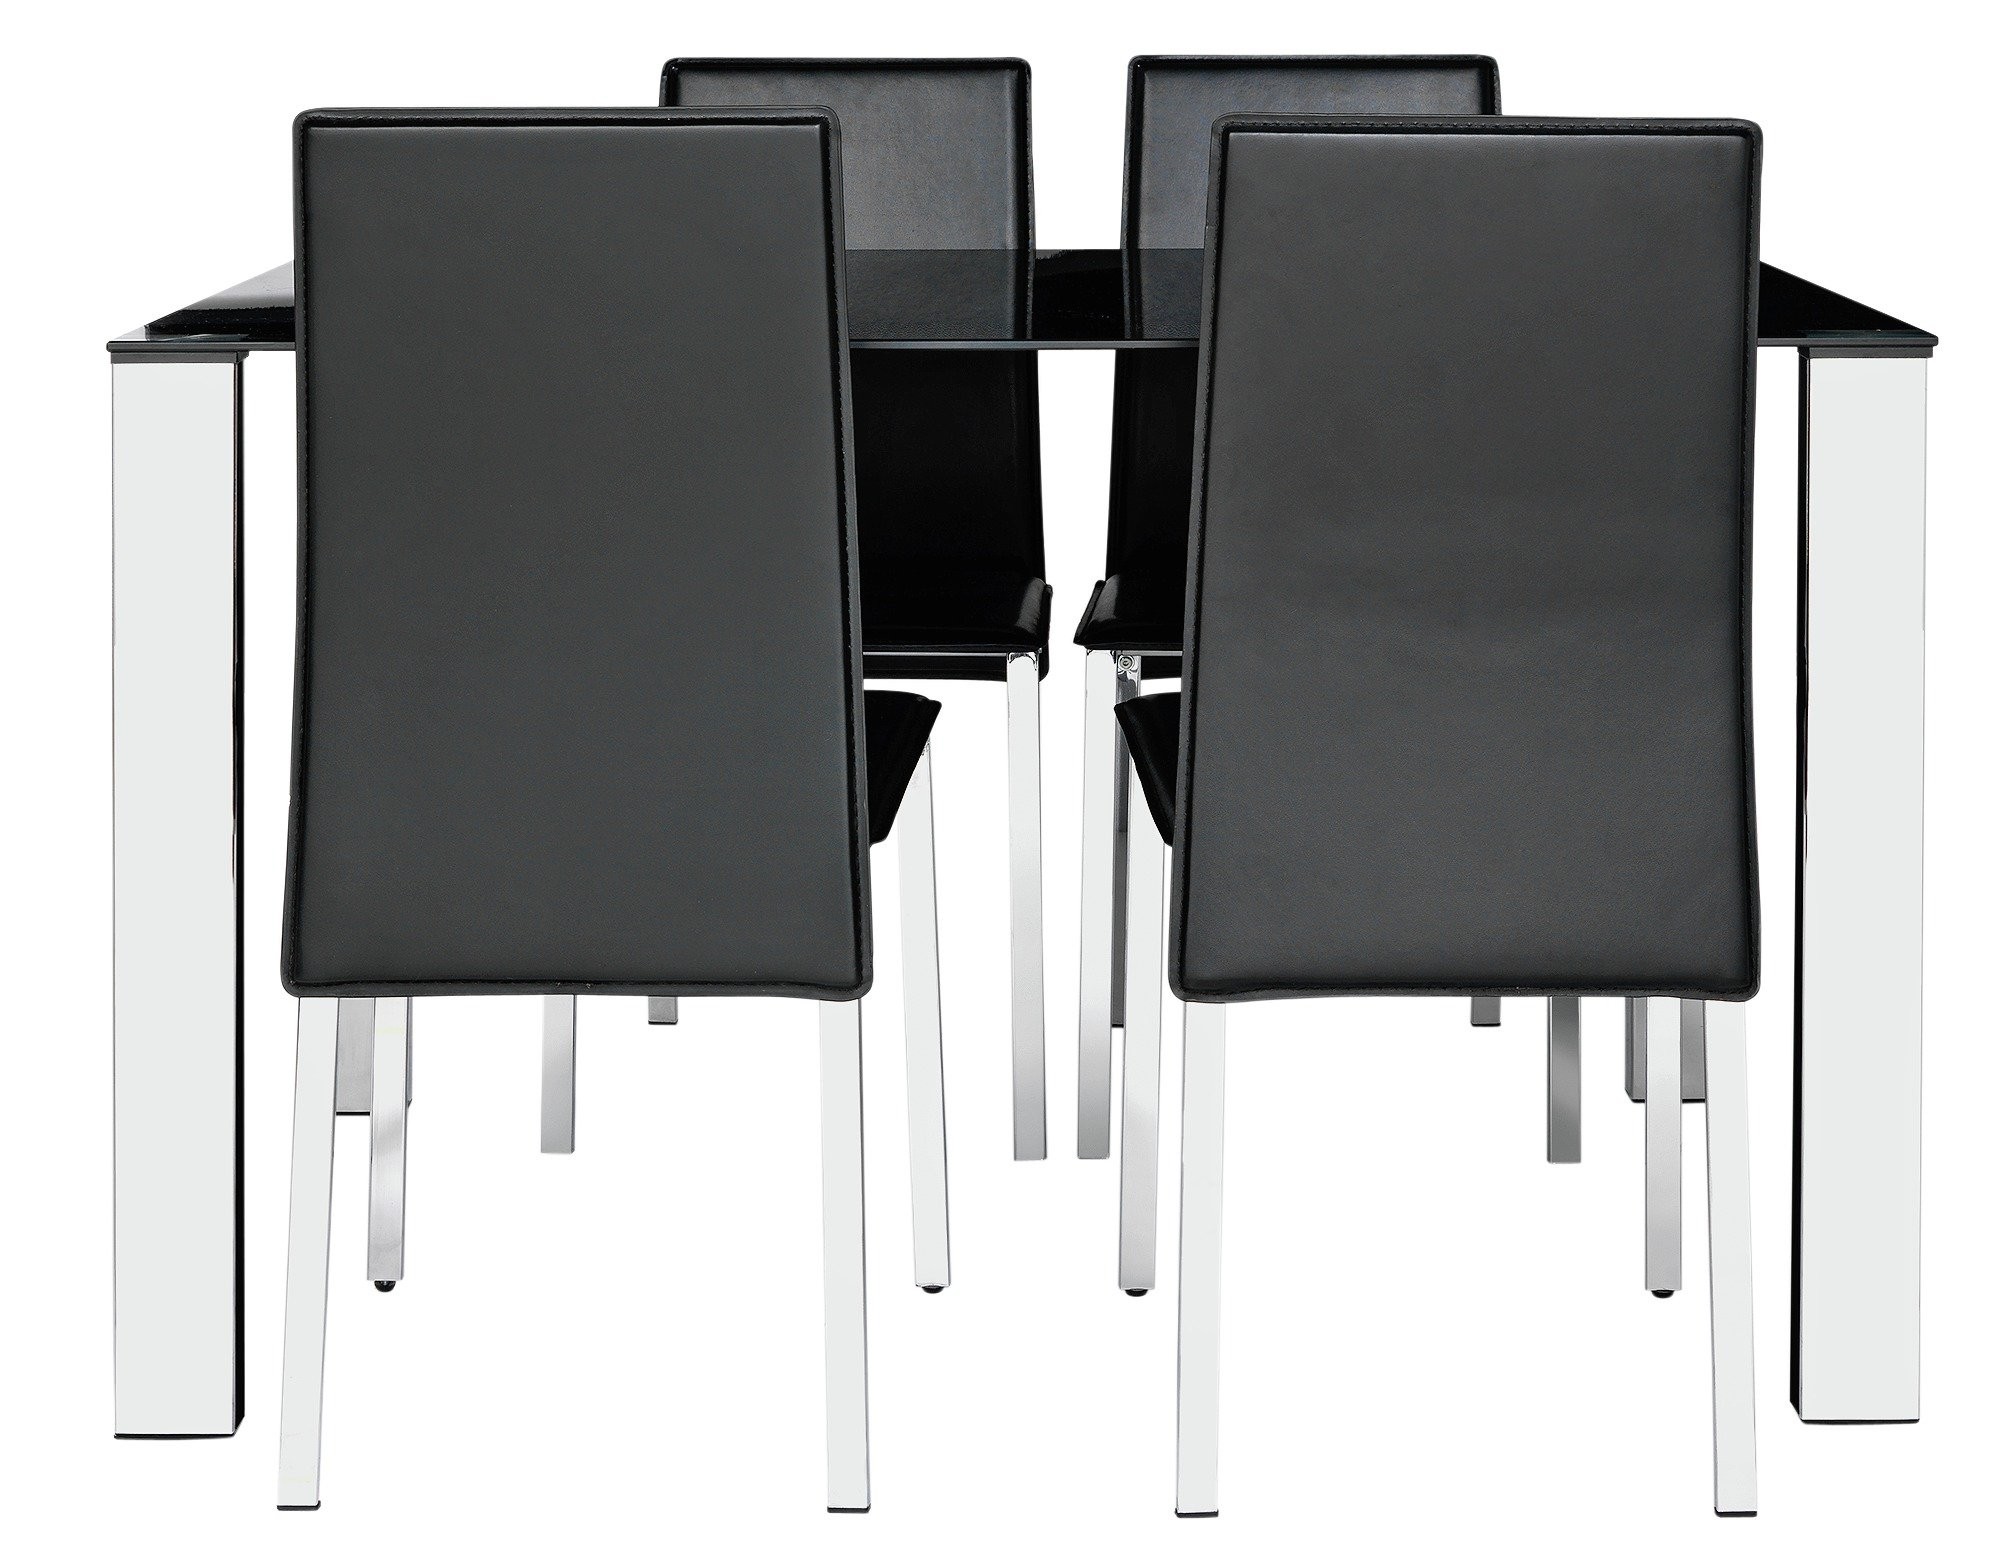 Black Glass Tables buy hygena fitz black glass dining table & 4 chairs - black at